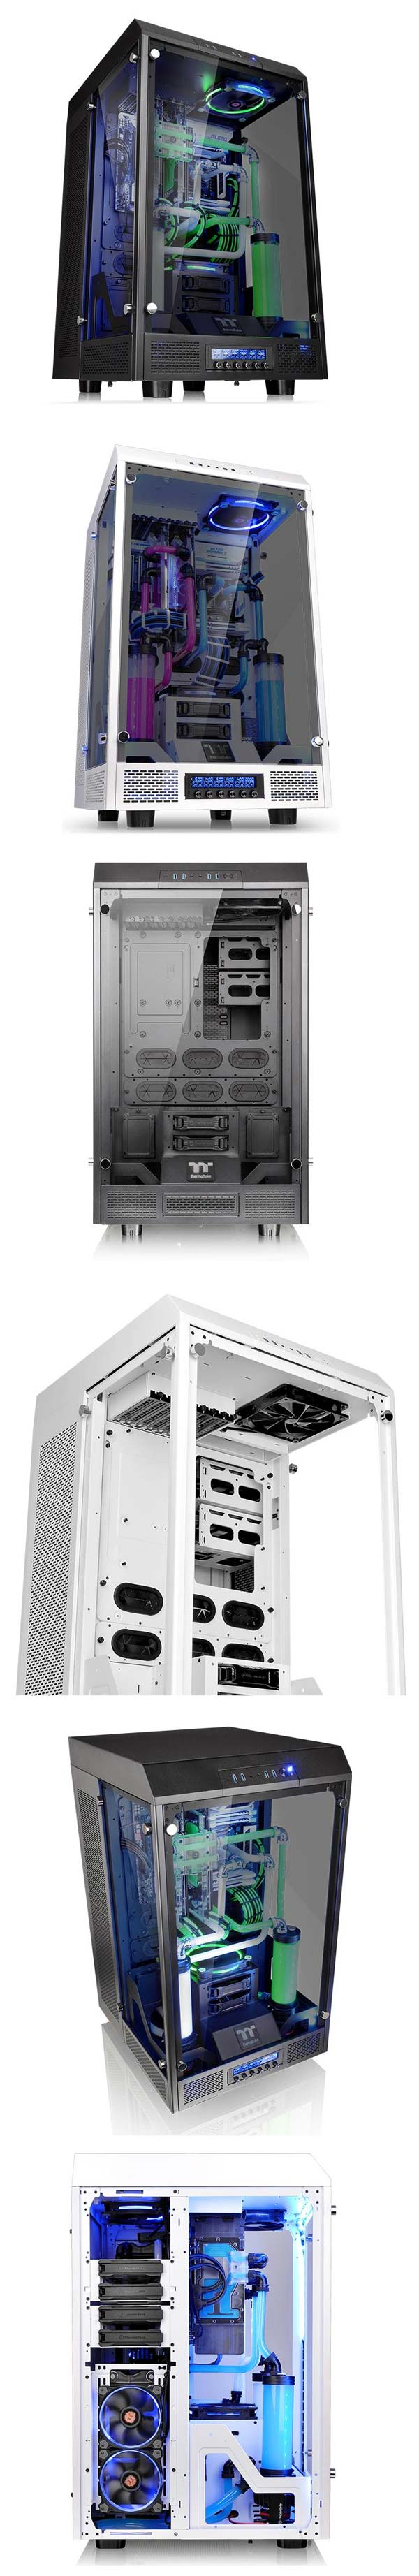 Корпус The Tower 900 от Thermaltake